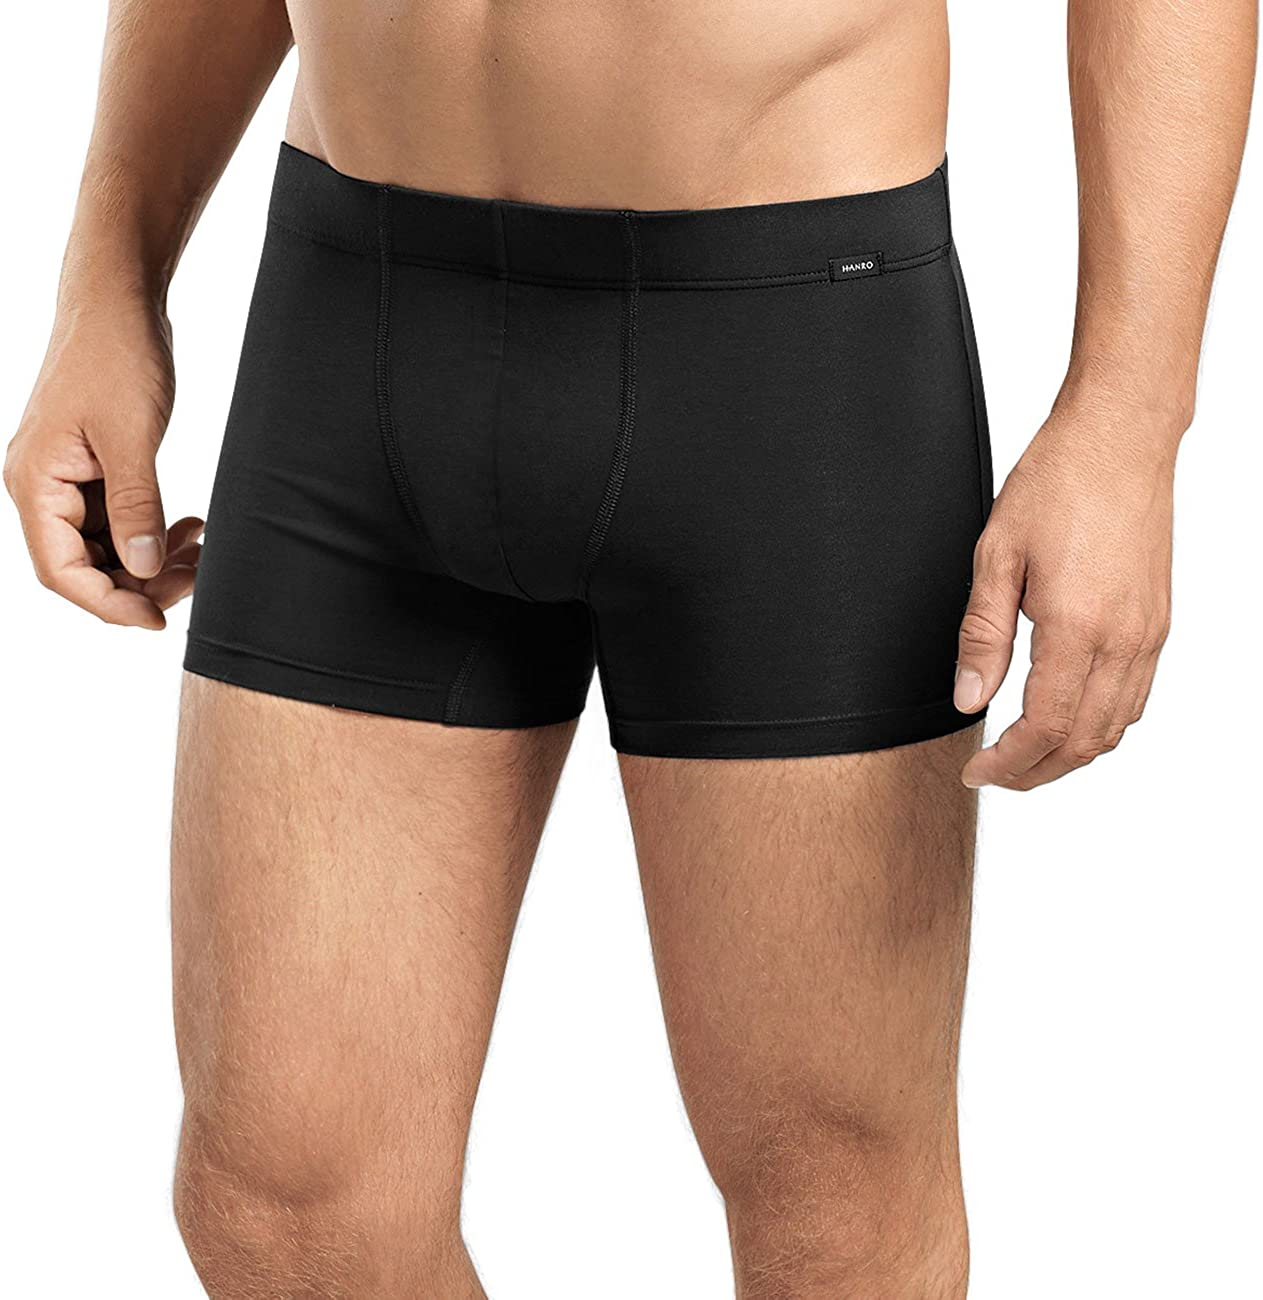 HANRO Men's Cotton Essentials 2-Pack Boxer Brief with Covered Waistband